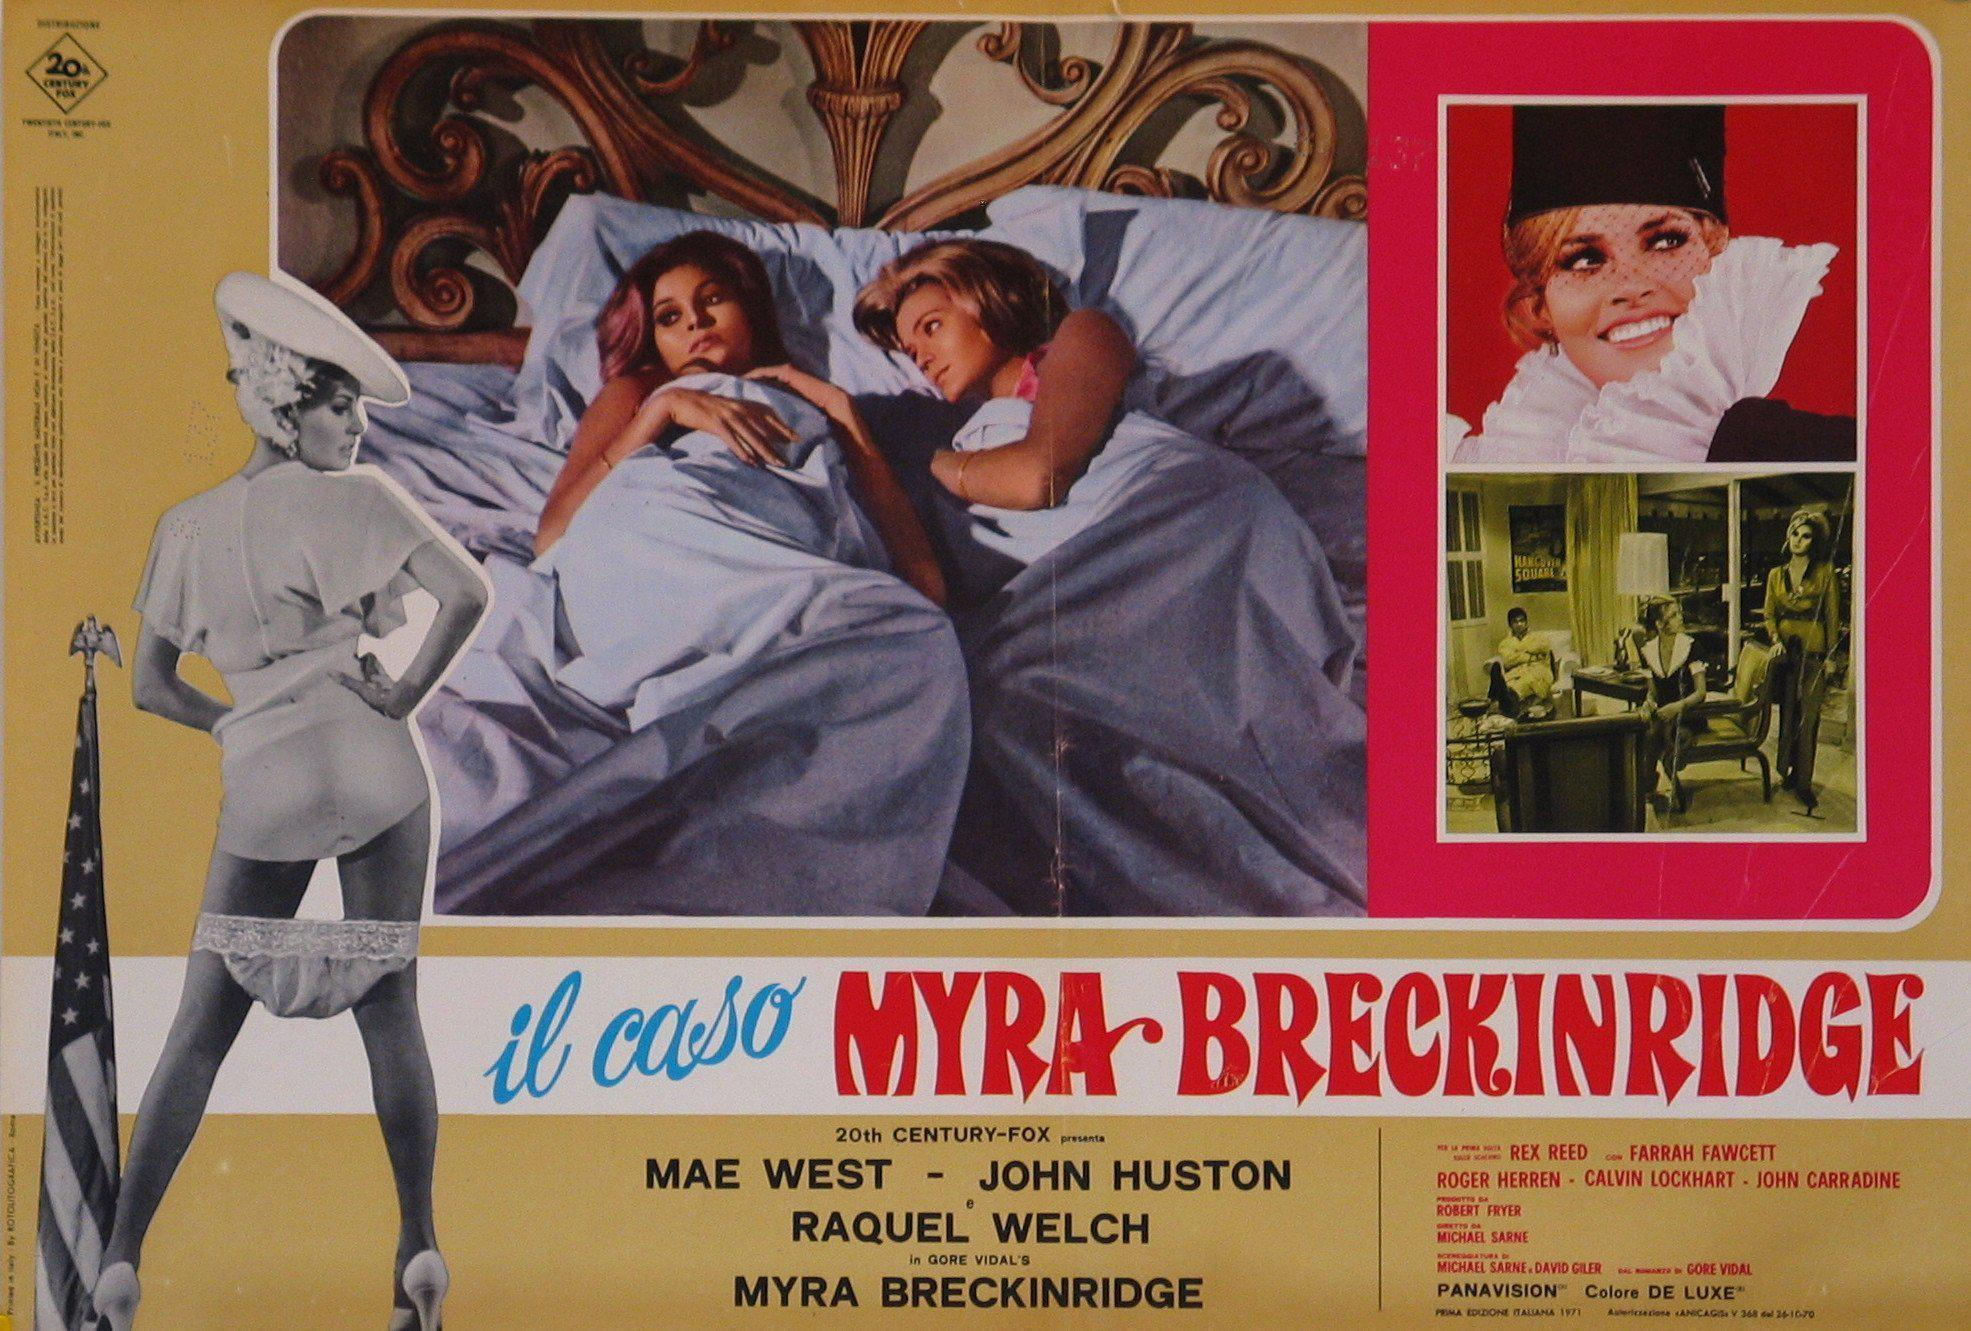 Myra Breckinridge Italian Photobusta (18x26) Original Vintage Movie Poster